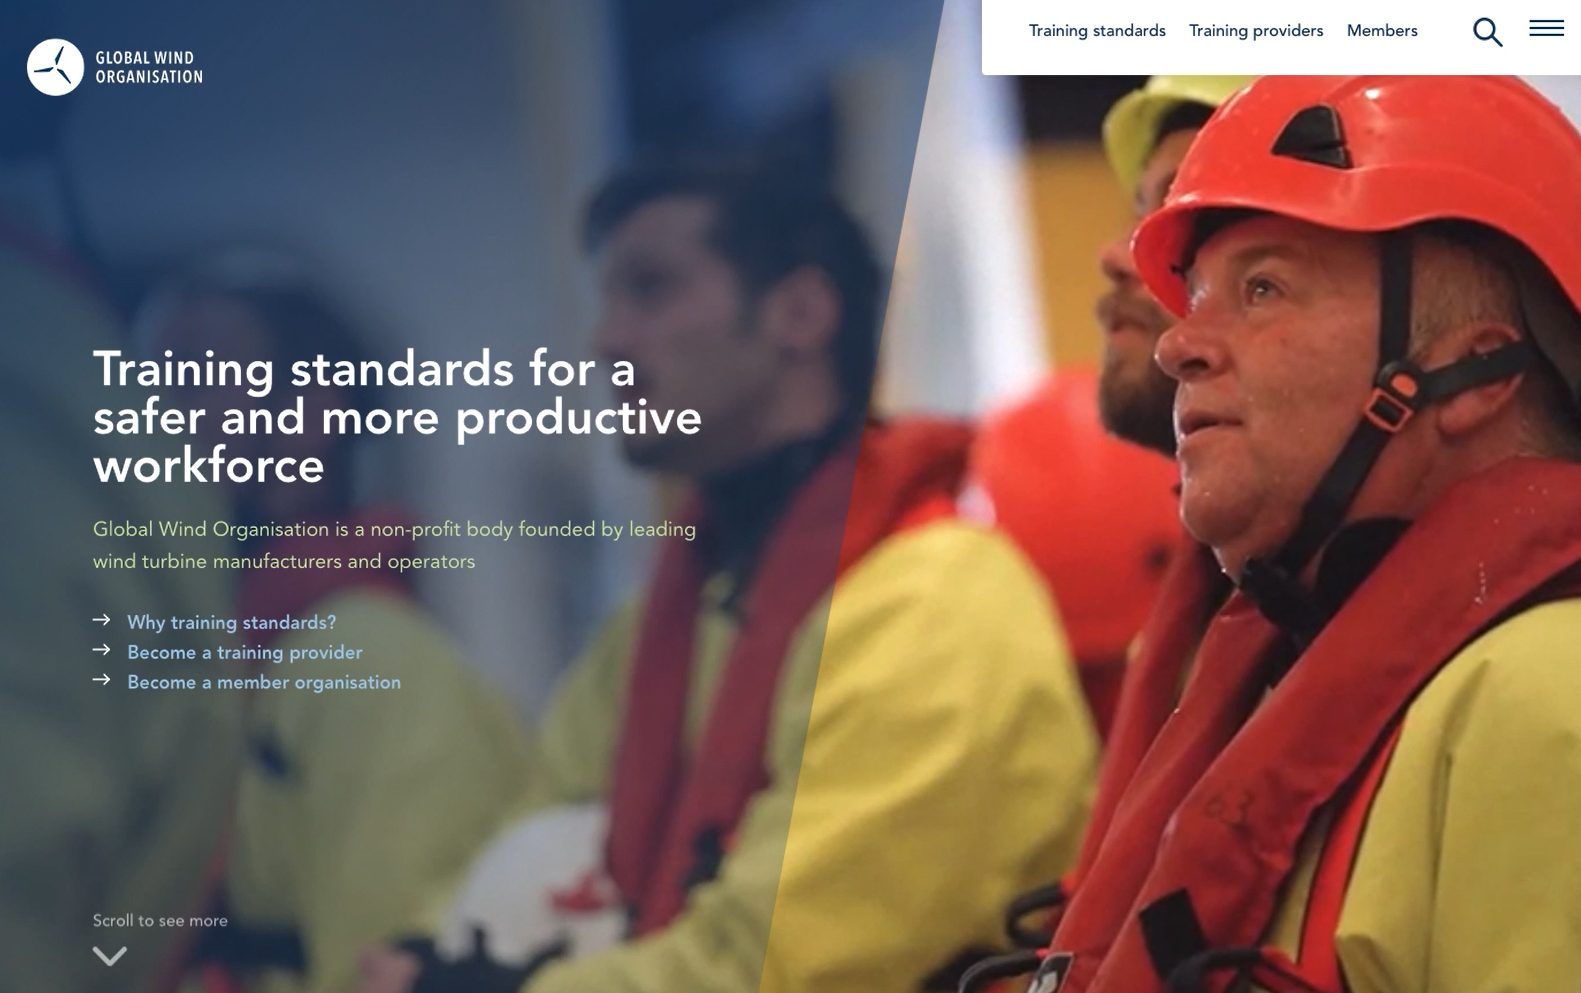 Global Wind Organisation - Training standards for a safer and more